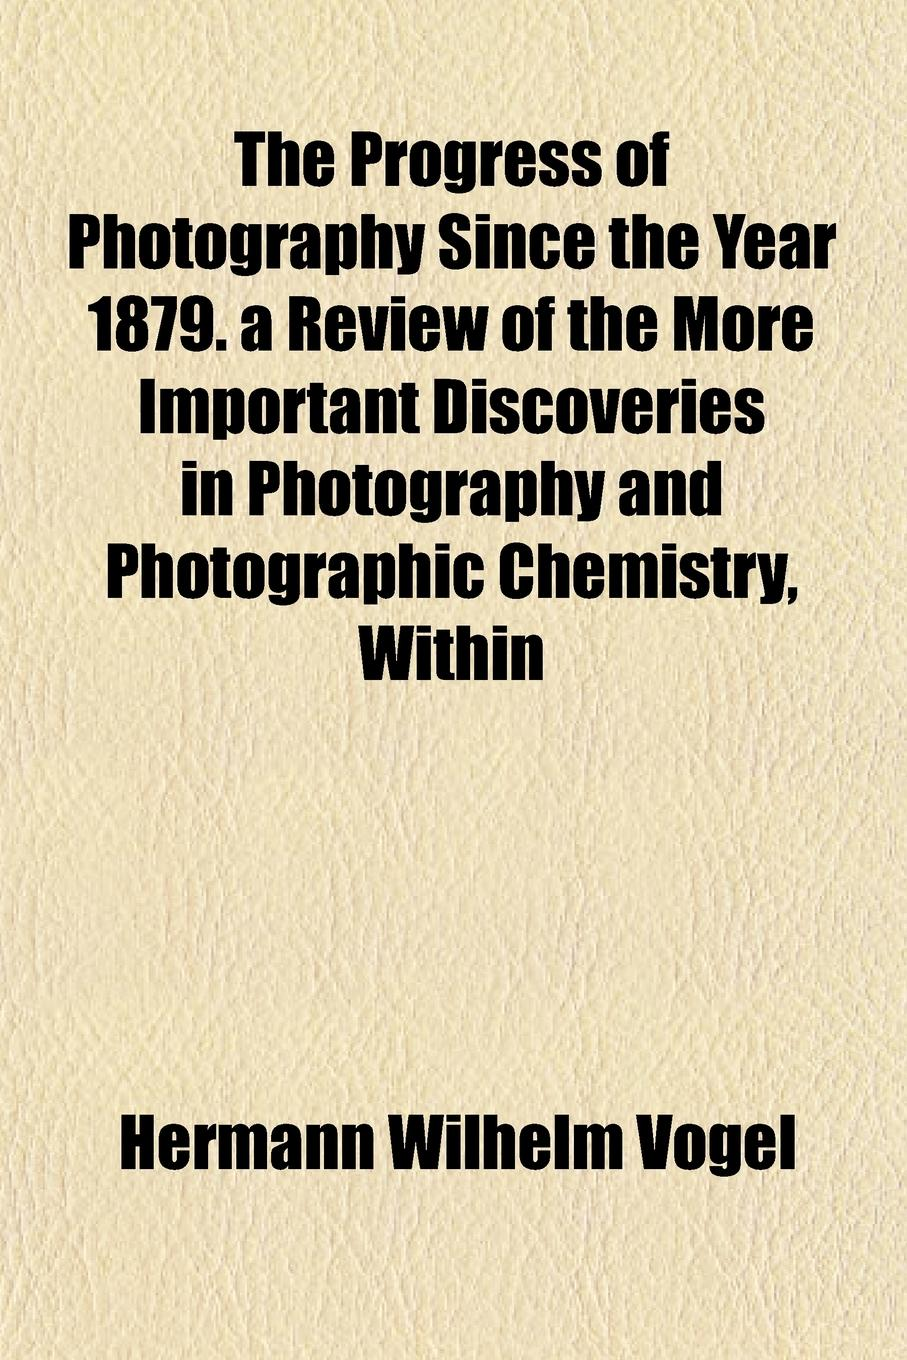 Hermann Wilhelm Vogel The Progress of Photography Since the Year 1879. a Review of the More Important Discoveries in Photography and Photographic Chemistry, Within 3x5ft color photography backdrop for studio photo props photographic background cloth waterproof 90 x 150cm